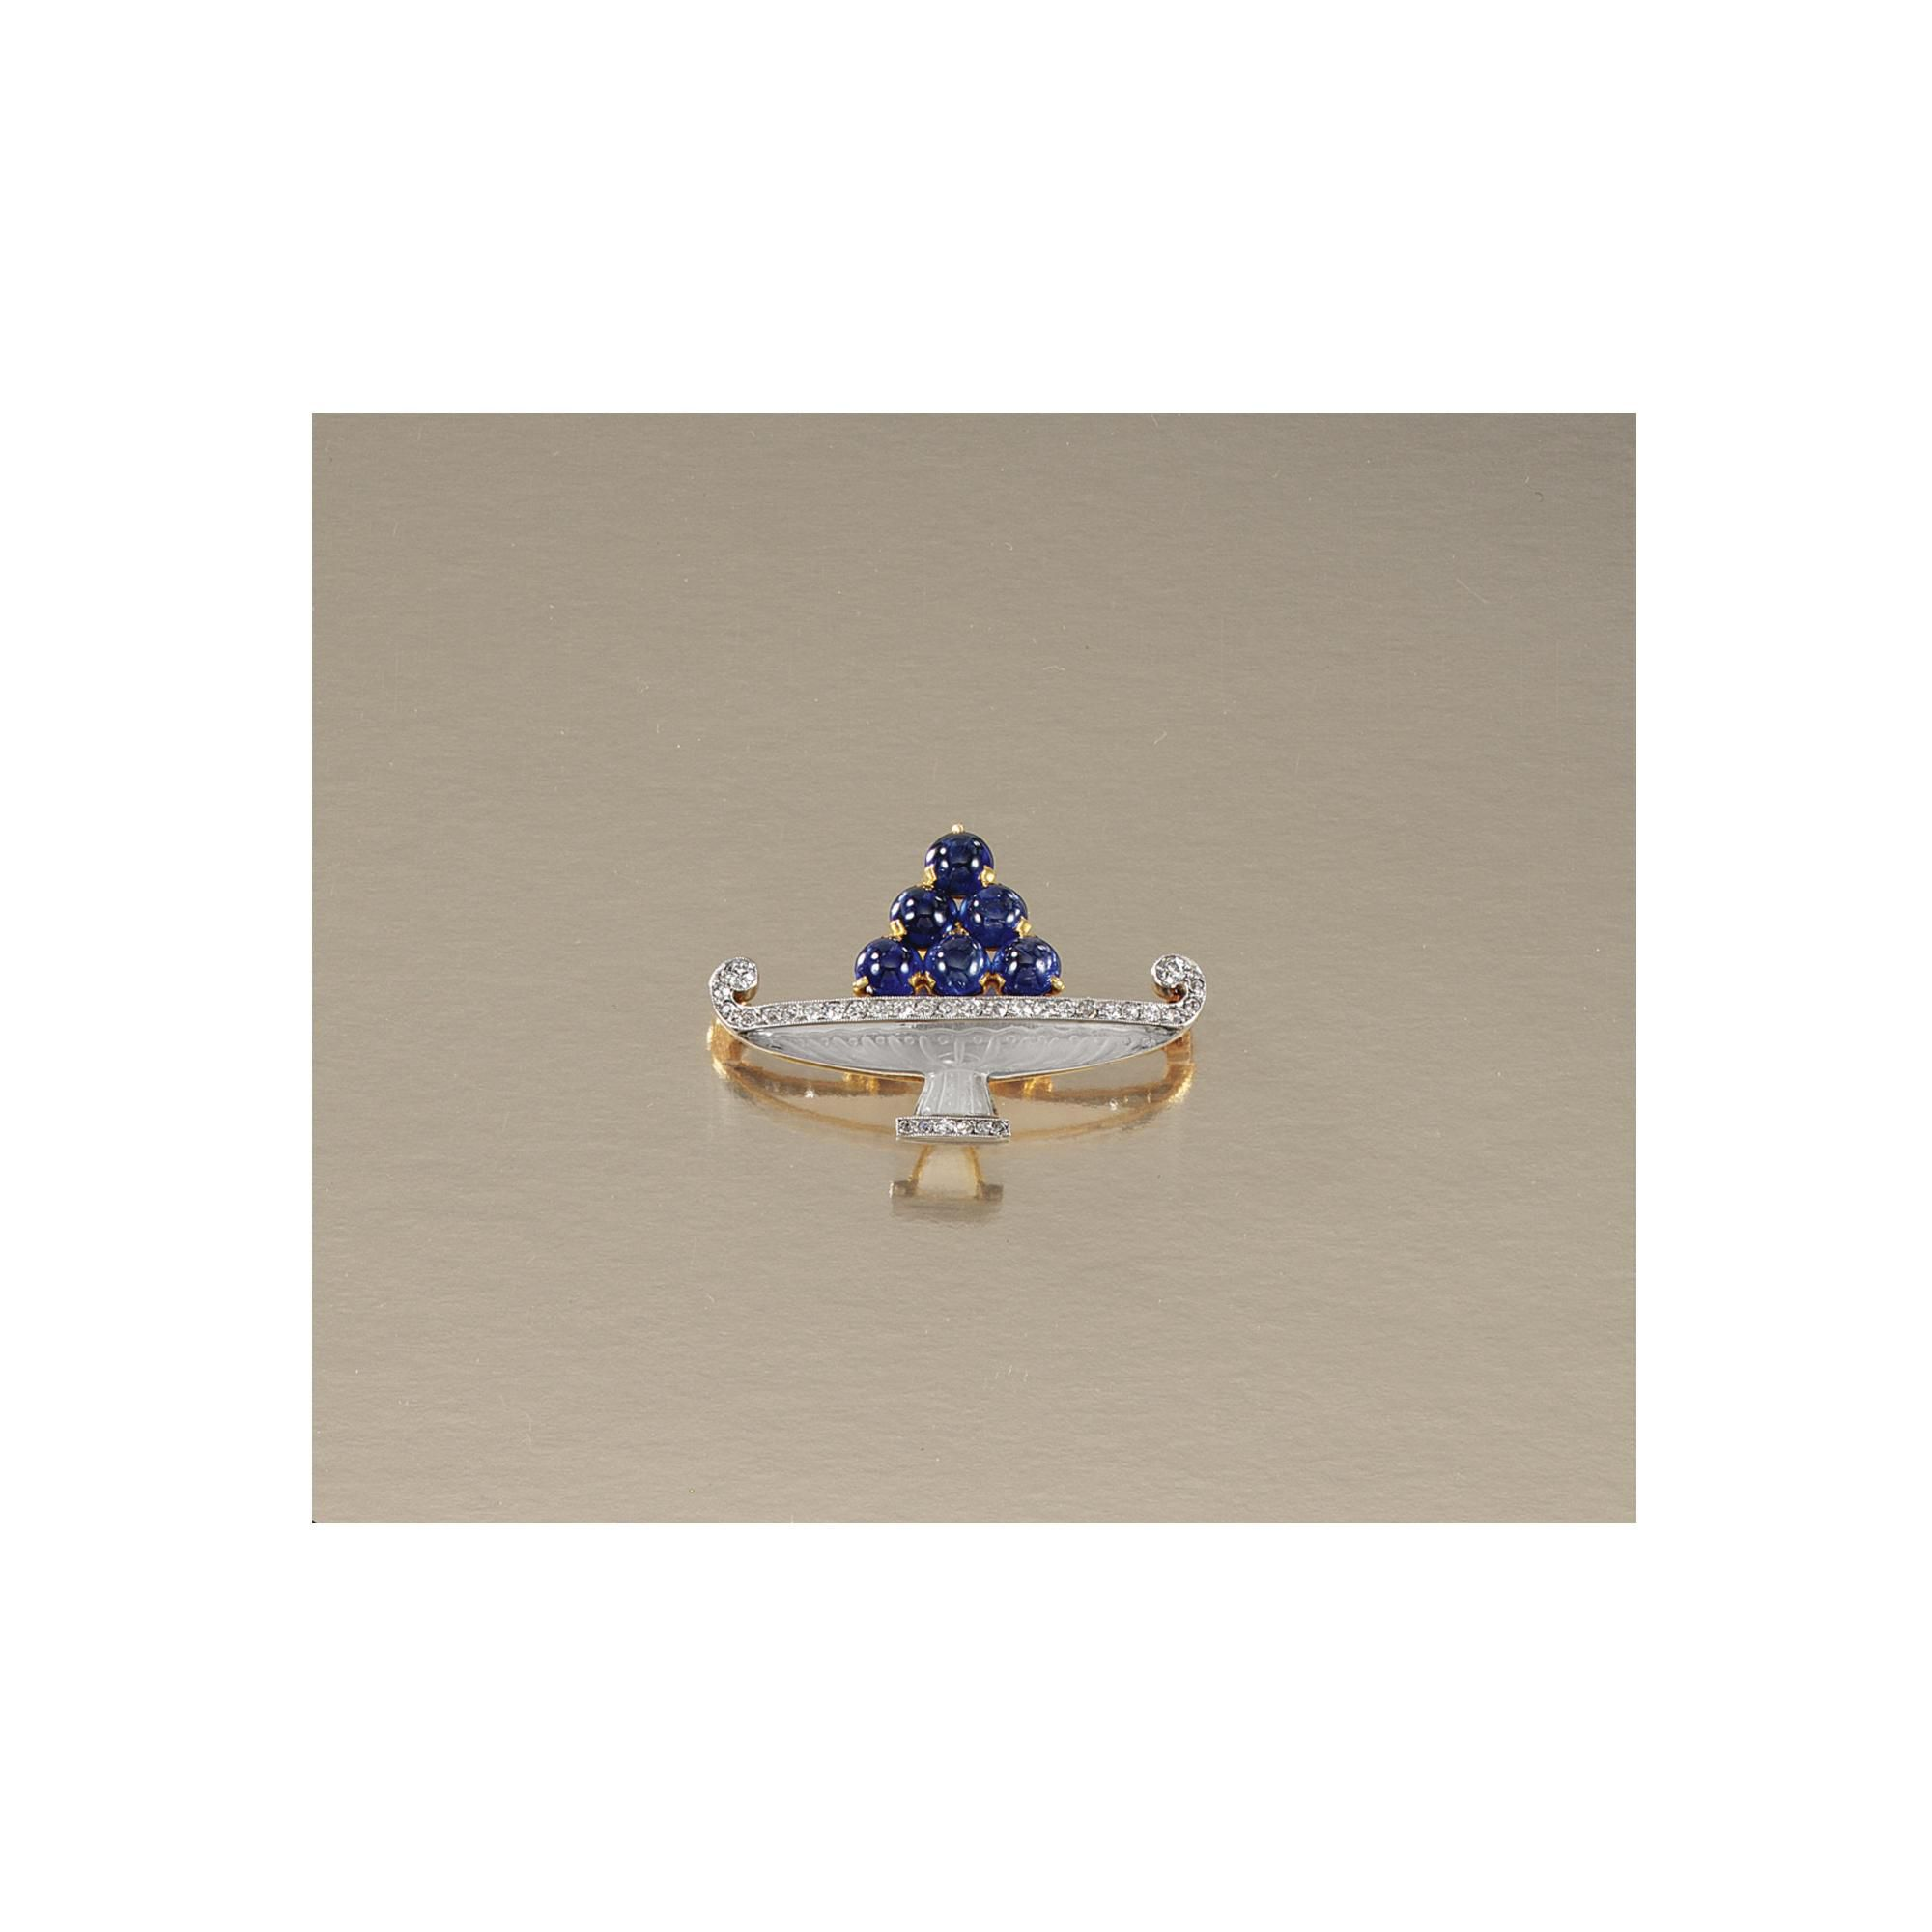 "ROCK CRYSTAL, SAPPHIRE AND DIAMOND ""FRUIT BOWL"" BROOCH, CARTIER, CIRCA 1915 Designed by Charles Jacqueau, the carved rock crystal fruit bowl lined with millegrain-set circular-cut diamonds and embellished with fruit of sapphire beads, signed Cartier, French assay marks.  Estimate   2,960 - 3,946USD  LOT SOLD. 11,839 USD"